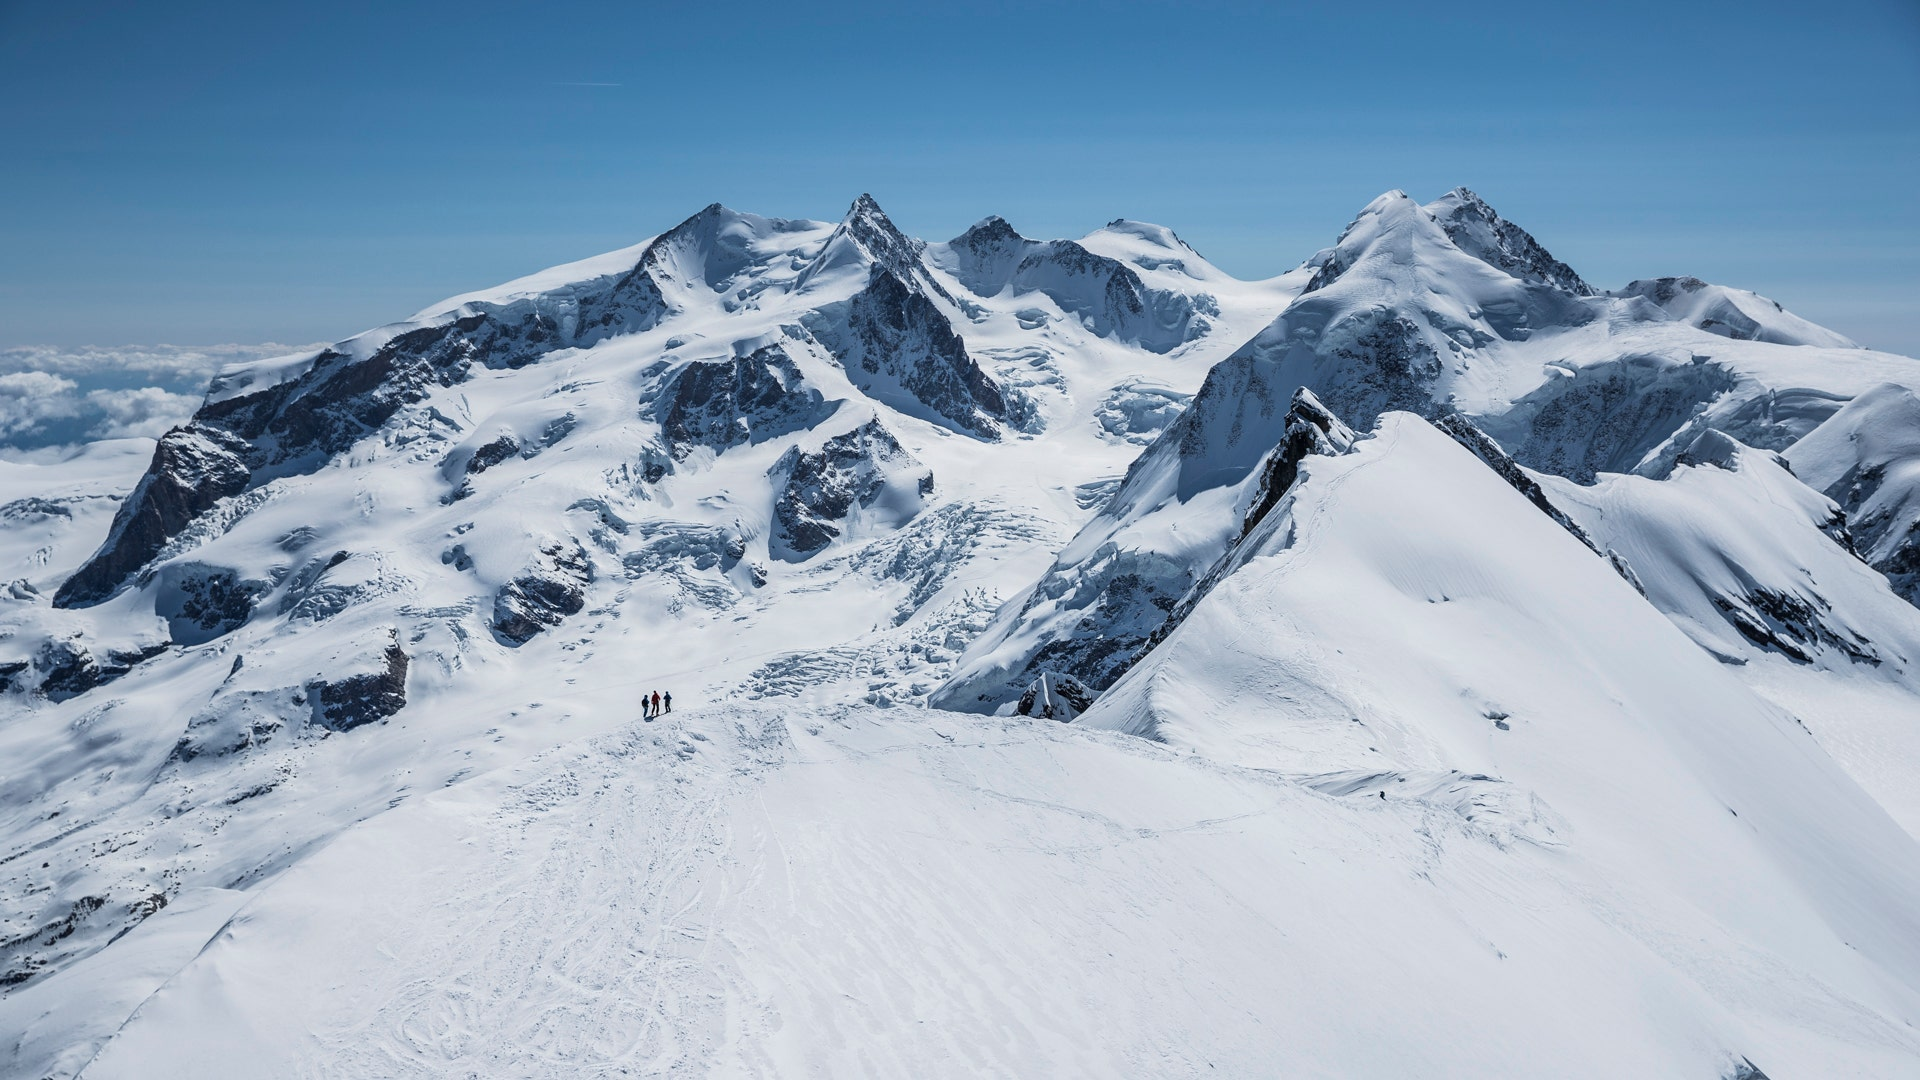 The mind-blowing panoramas of the Alps